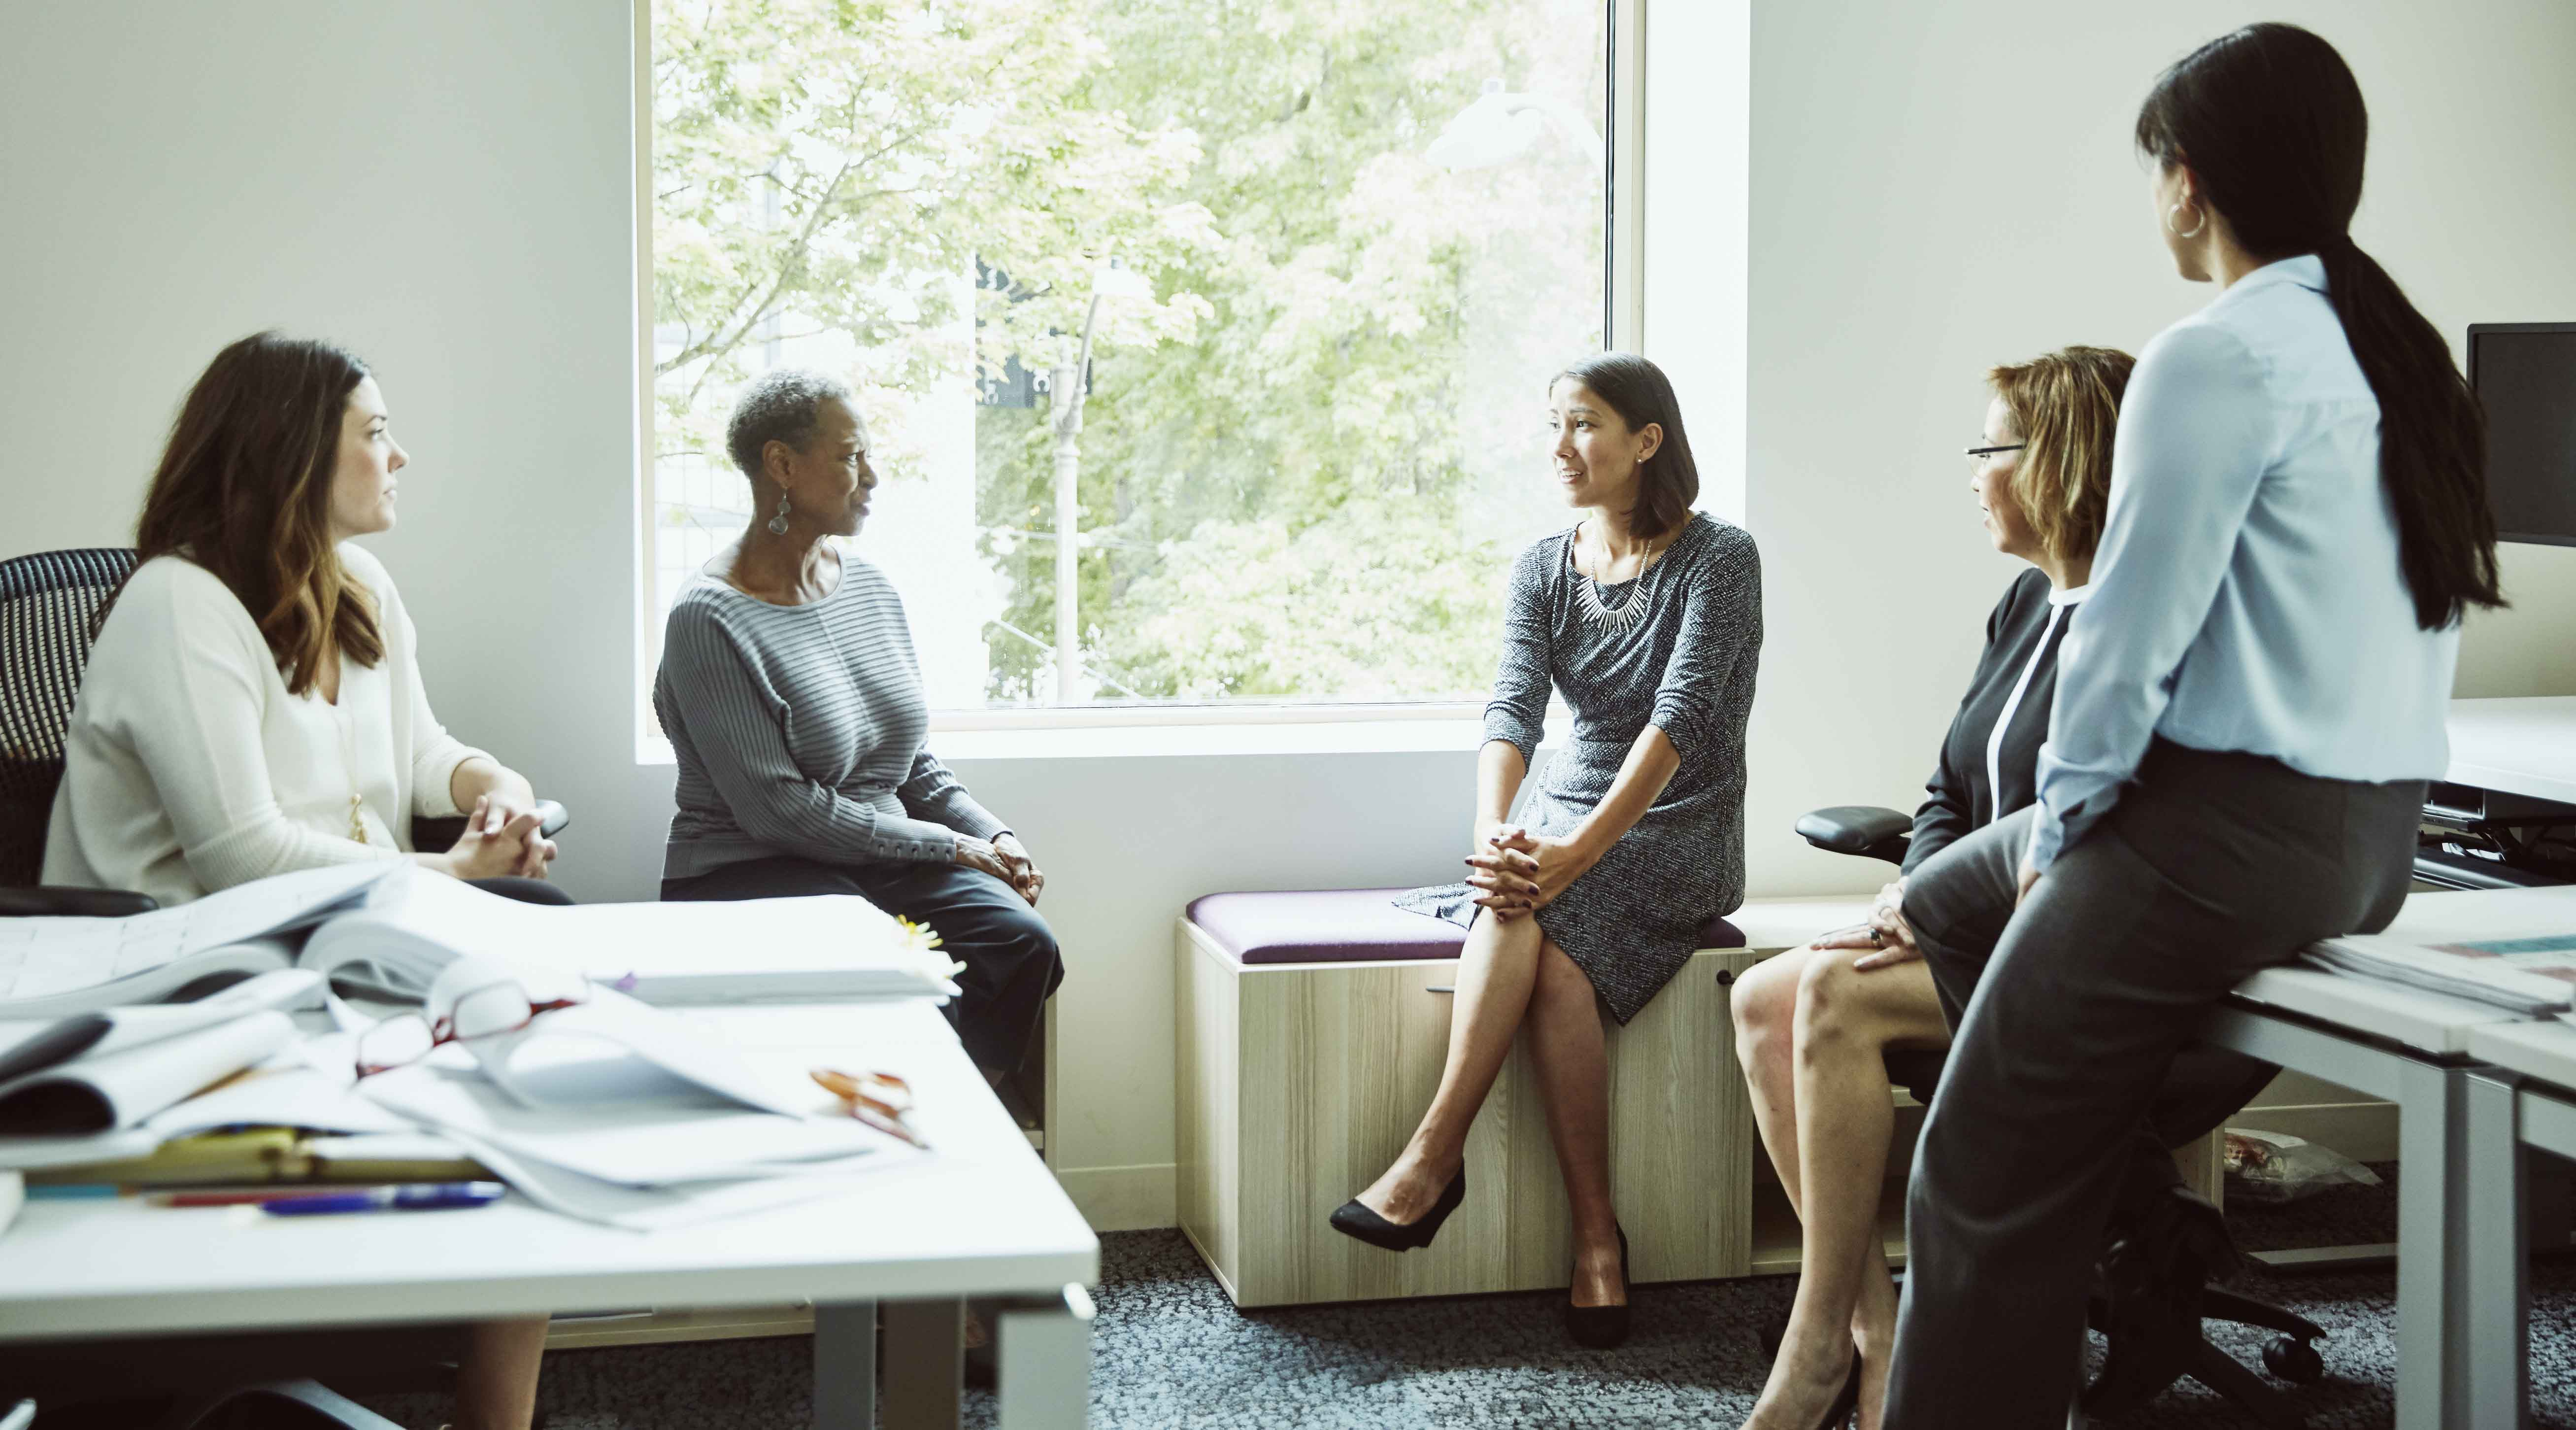 A group of women sit in a circle and discuss work.